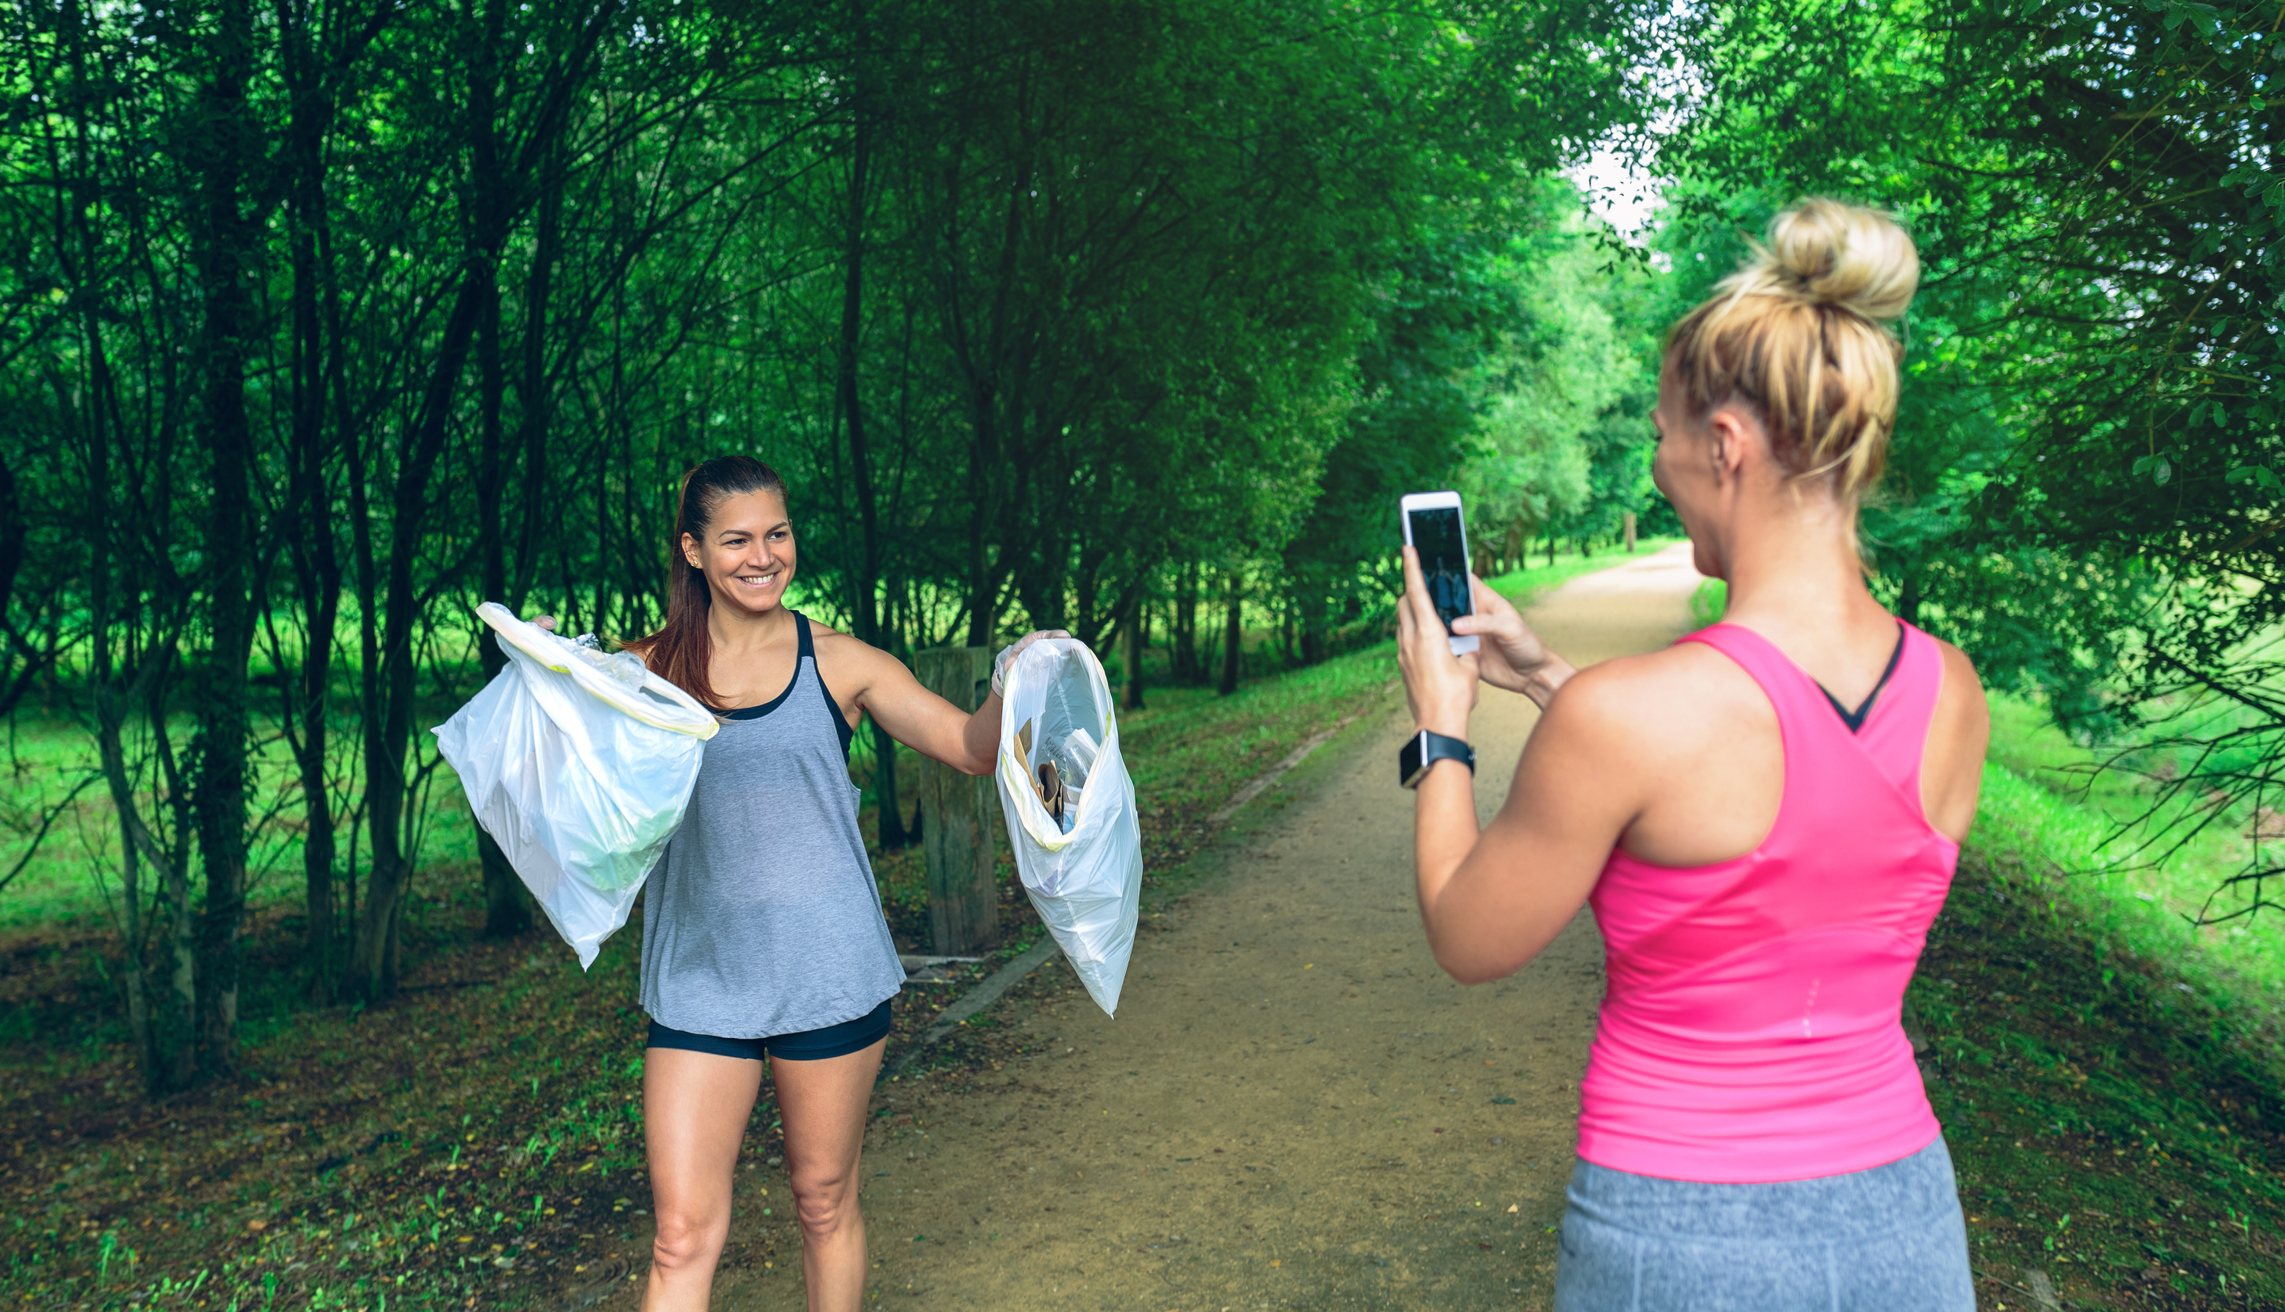 Girl taking a picture of a friend with trash bags after plogging